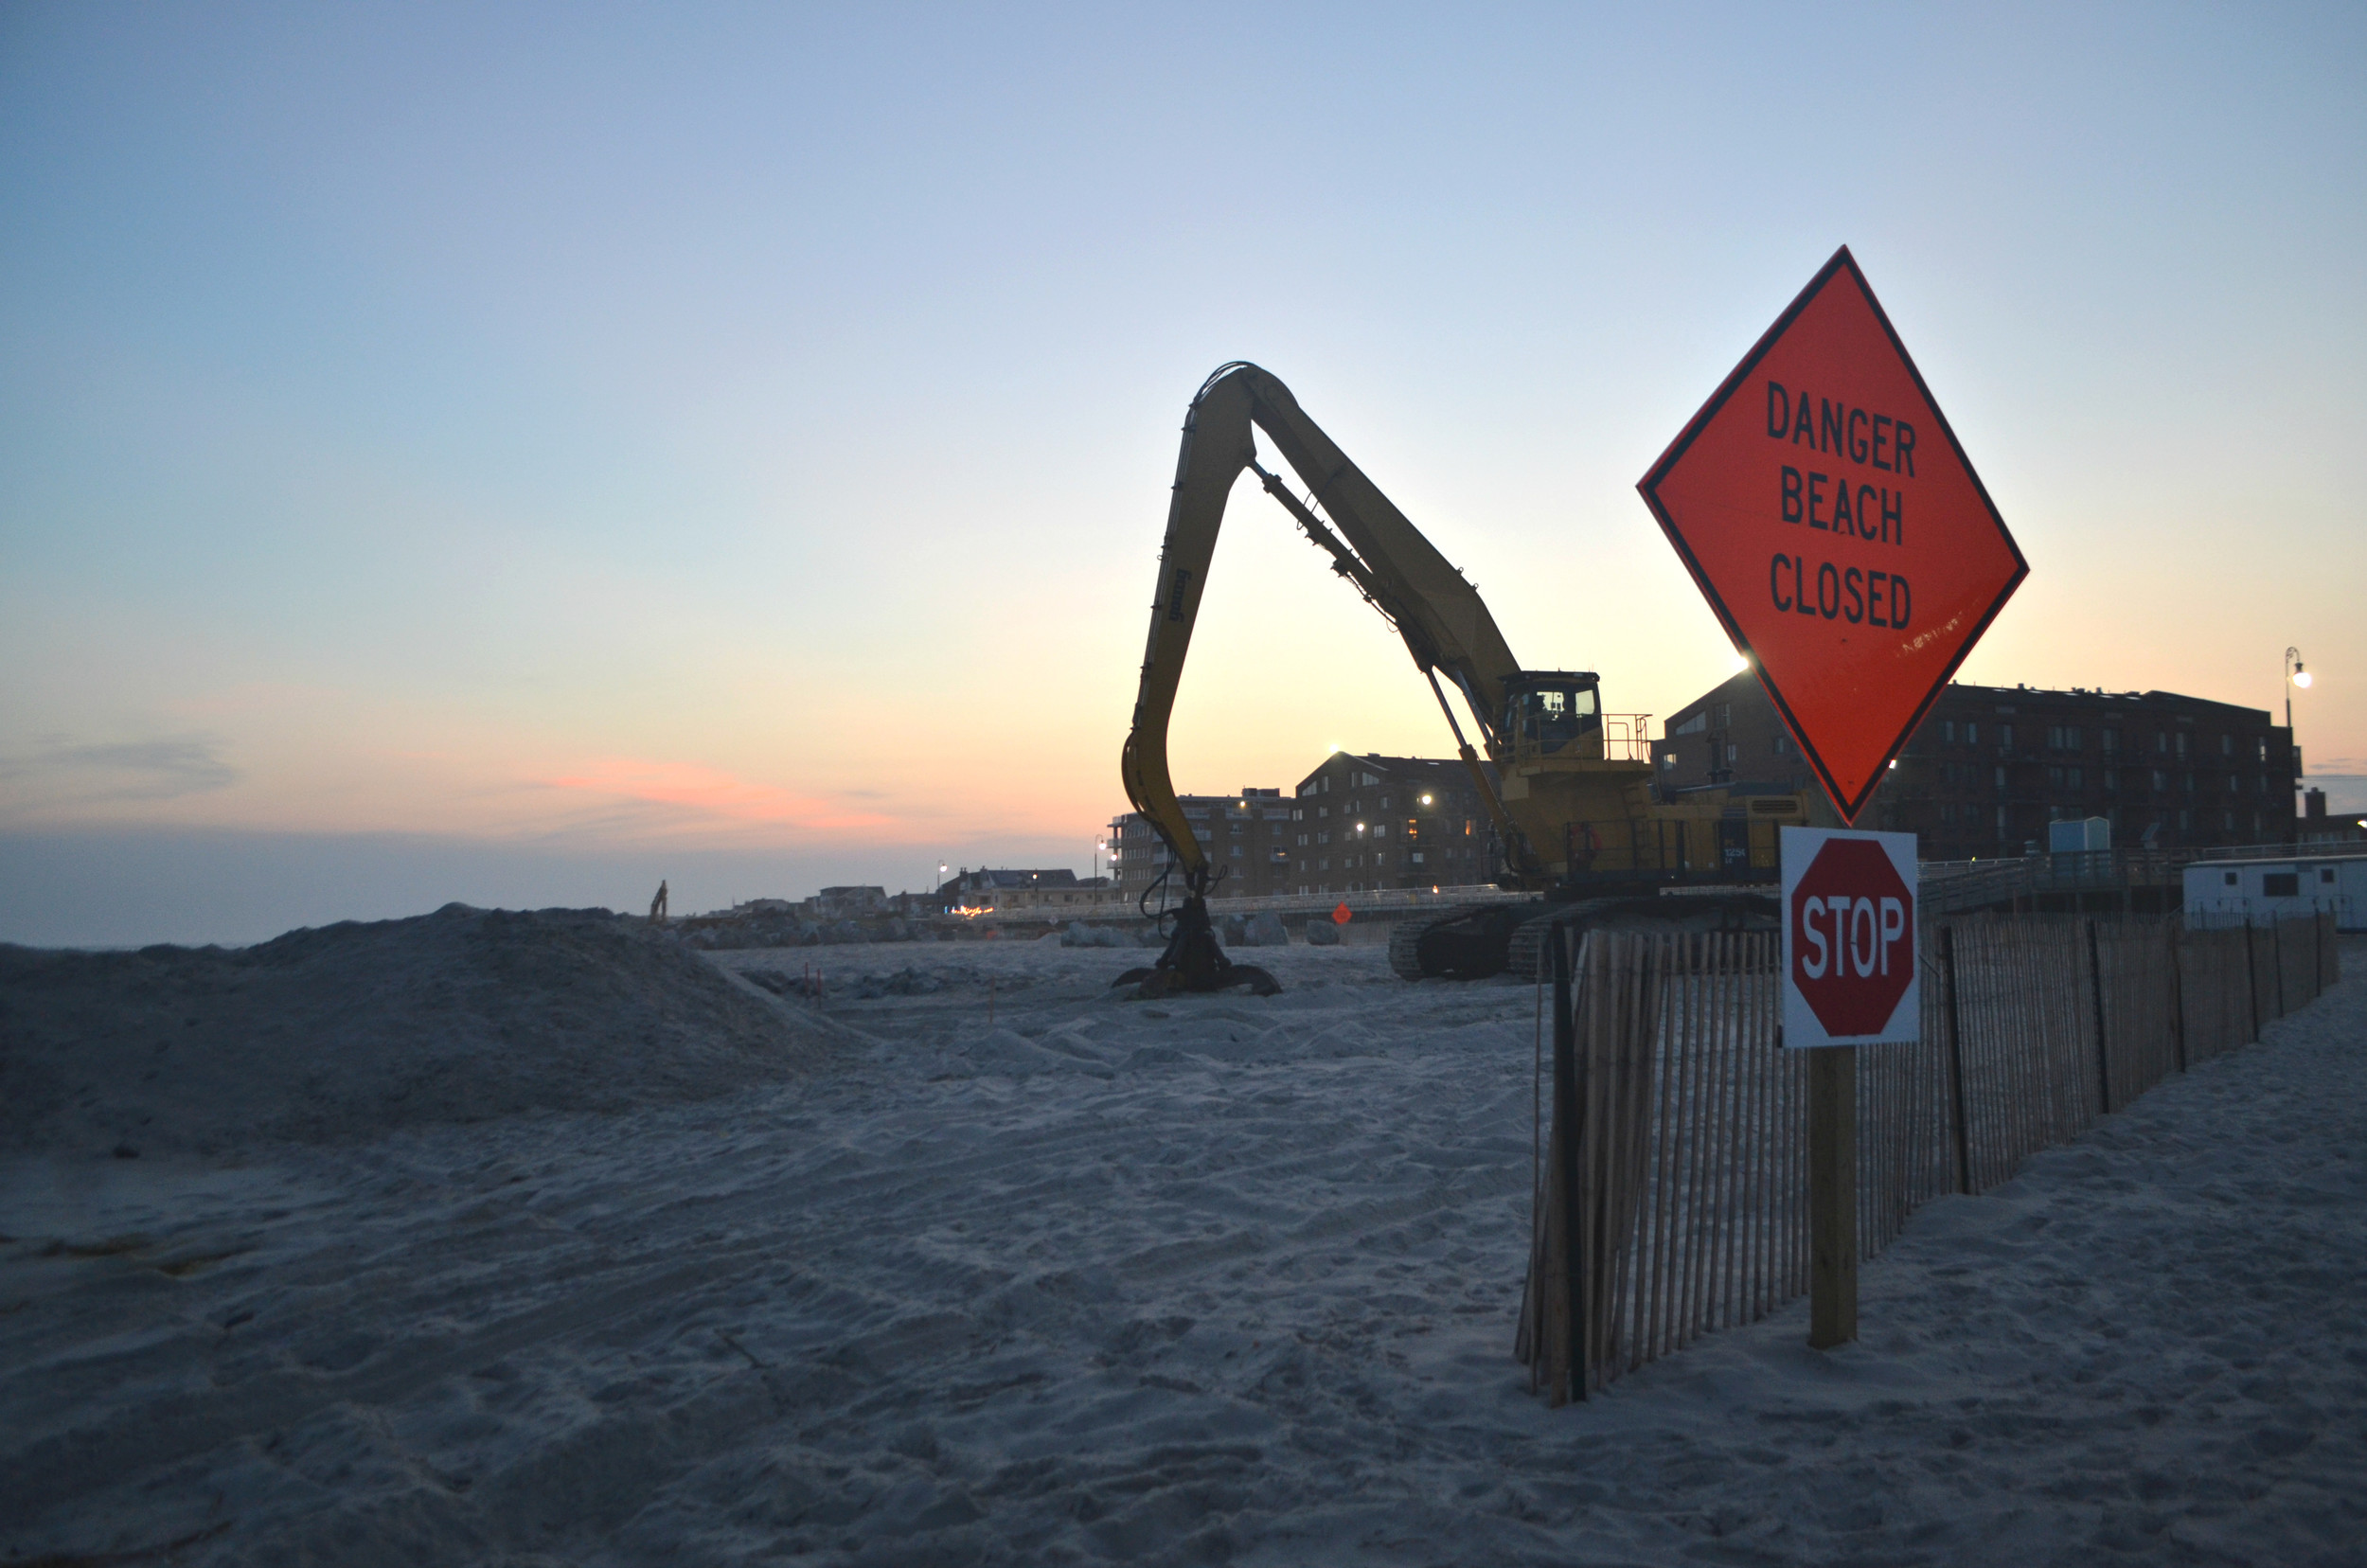 City officials requested that construction on the next pair of jetties be postponed until after Labor Day, which the Army Corps of Engineers rejected.